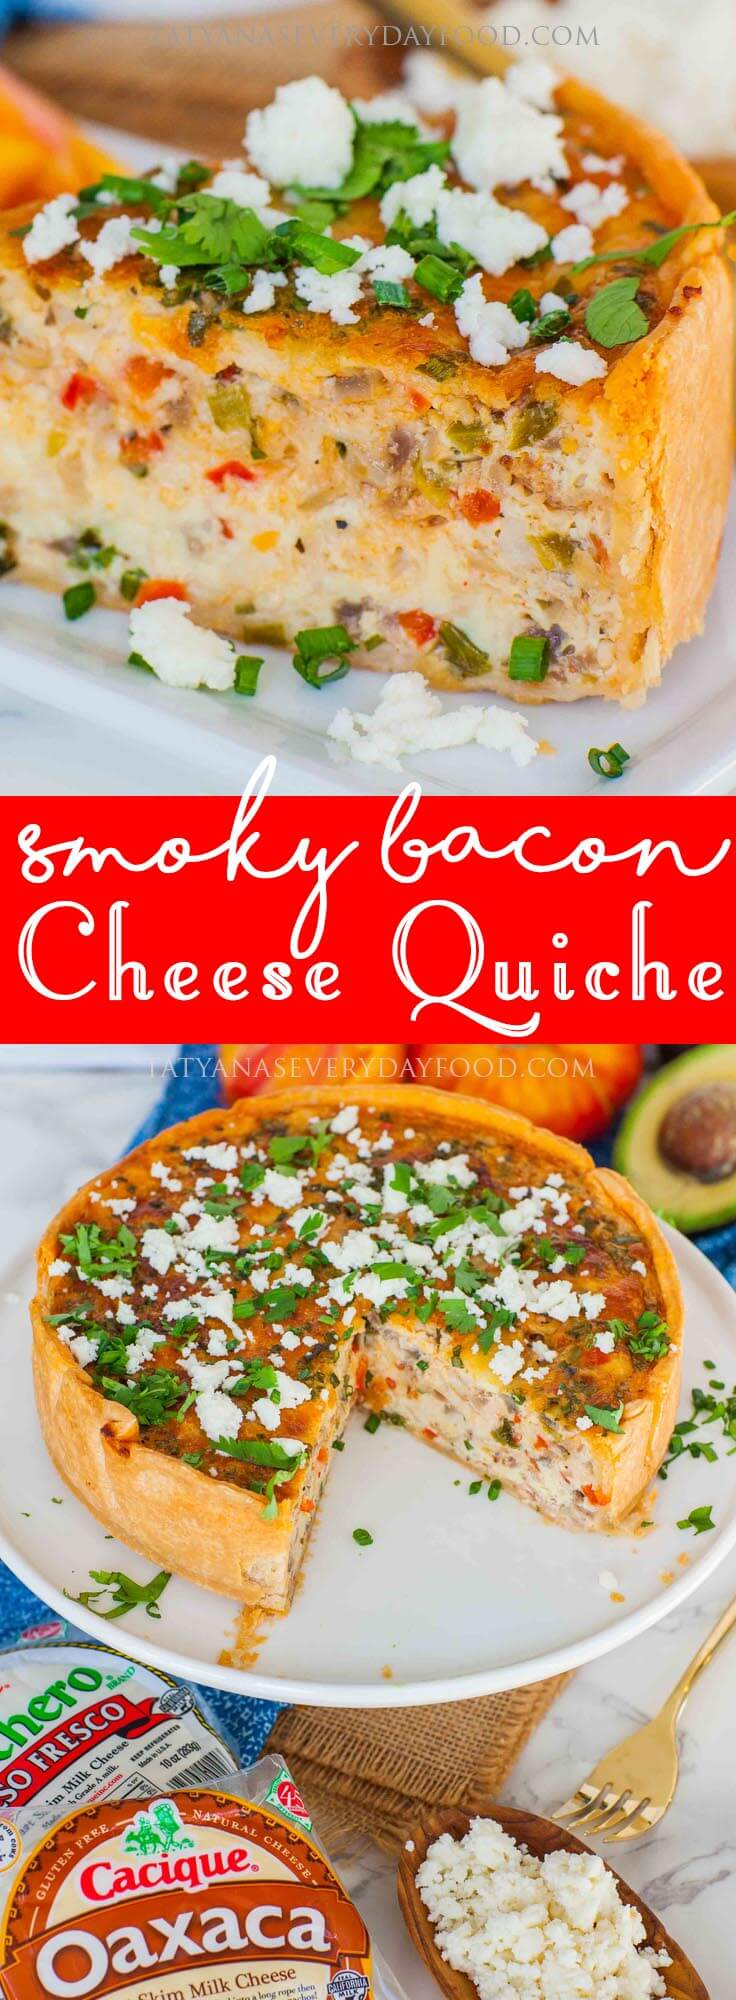 Bacon Cheese Quiche video recipe